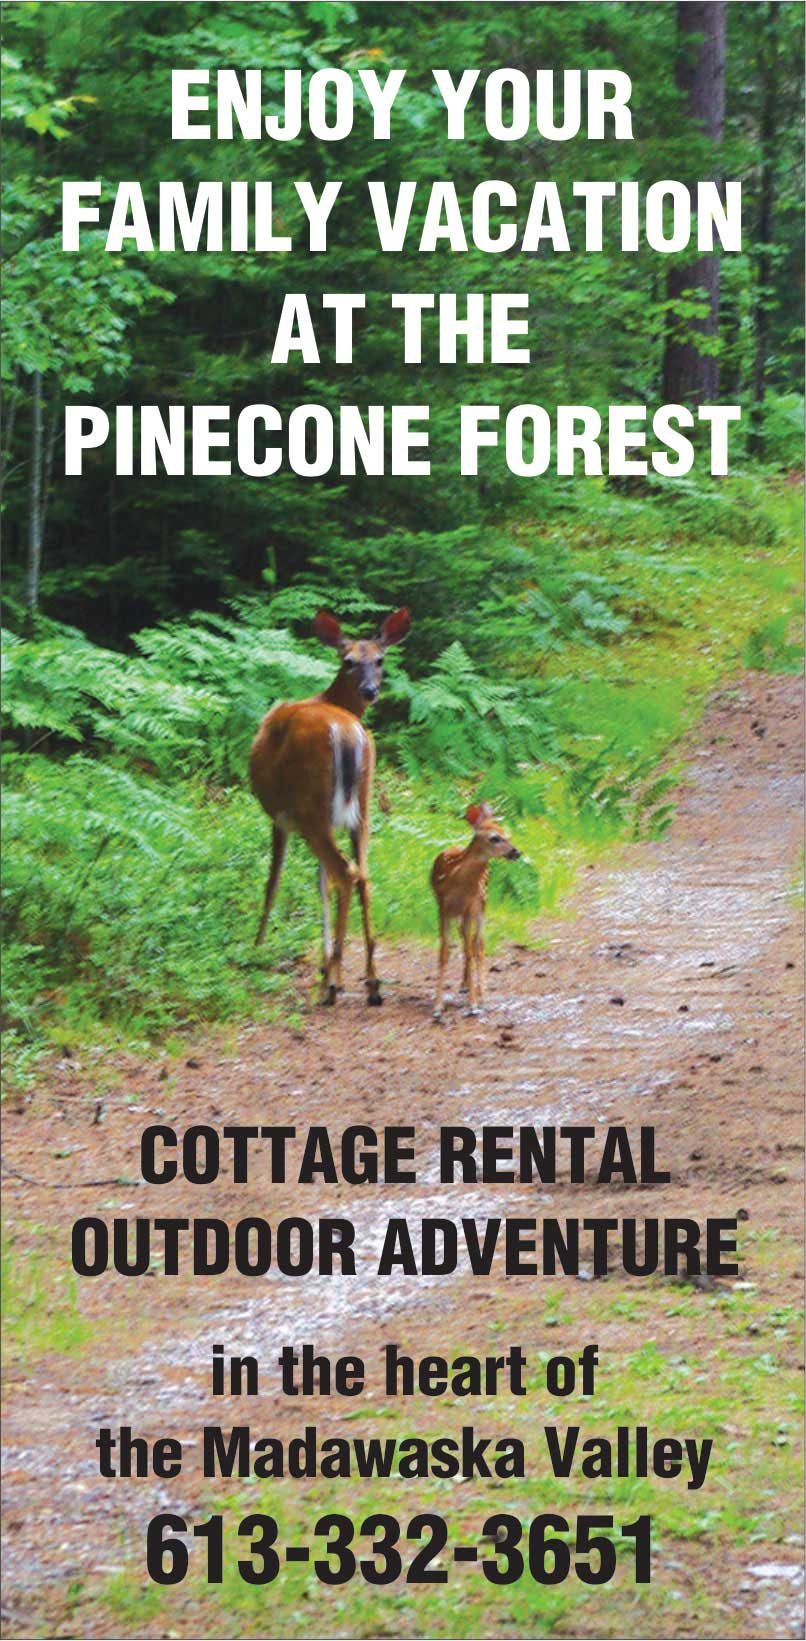 Enjoy Your Family Vacation at The Pinecone Forest--Cottage Rental, Outdoor Adventure